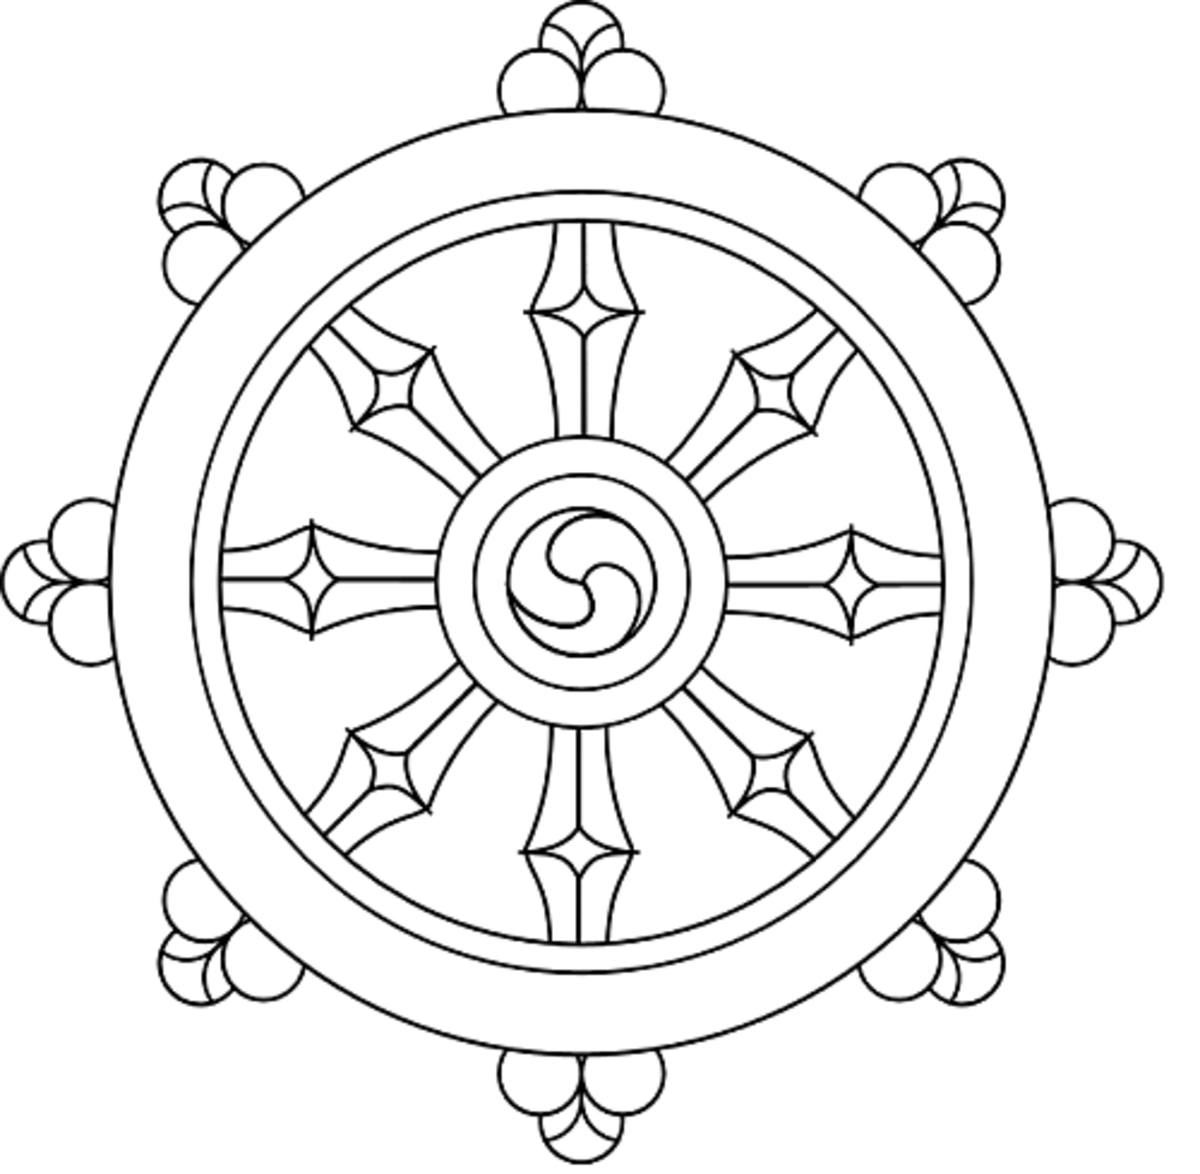 The Dharmachakra or 'Wheel of Life'.